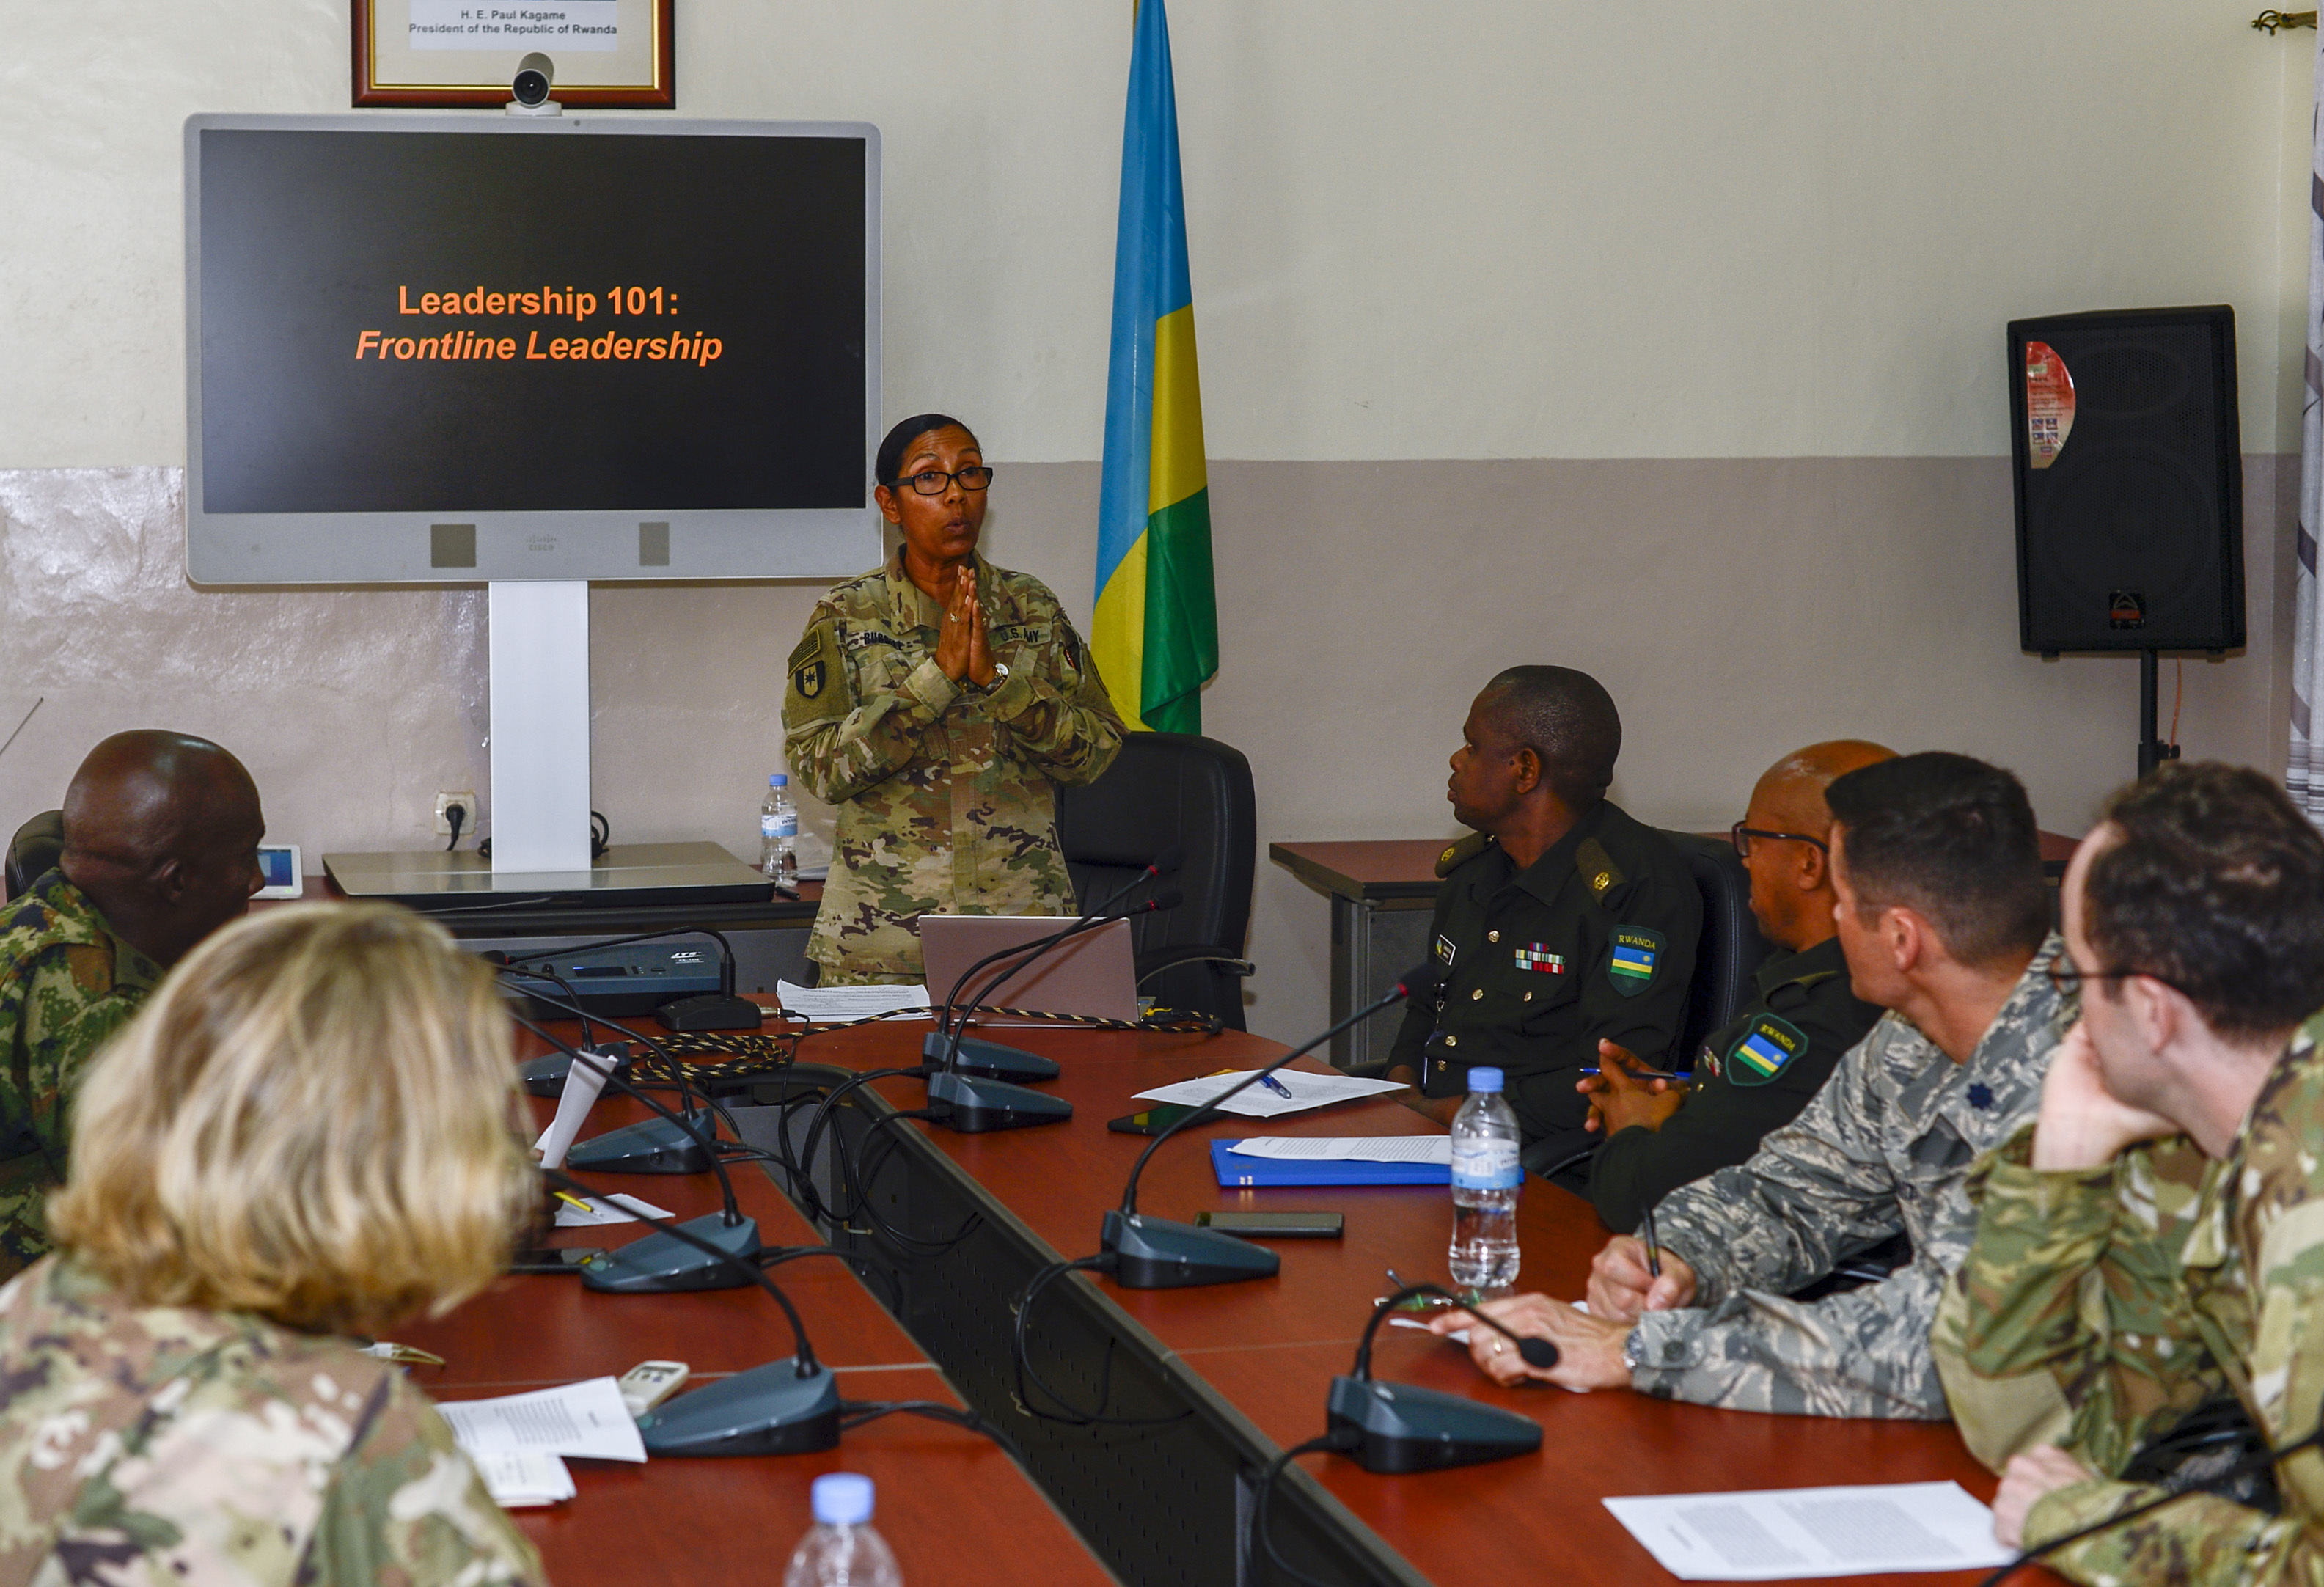 U.S. Army Maj. Dionicia Russell, a public health nurse assigned to the 403rd Civil Affairs Battalion functional specialty team, assigned to Combined Joint Task Force-Horn of Africa (CJTF-HOA), Camp Lemonnier, Djibouti, presents a leadership seminar at the Rwanda Military Hospital (RMH) in Kigali, Rwanda, Nov. 27, 2018. Russell was at RMH participating in a weeklong subject matter expert exchange alongside U.S. military medical personnel assigned CJTF-HOA and Landstuhl Regional Health Center, Germany. (U.S. Navy photo by Mass Communication Specialist 2nd Class Timothy M. Ahearn)